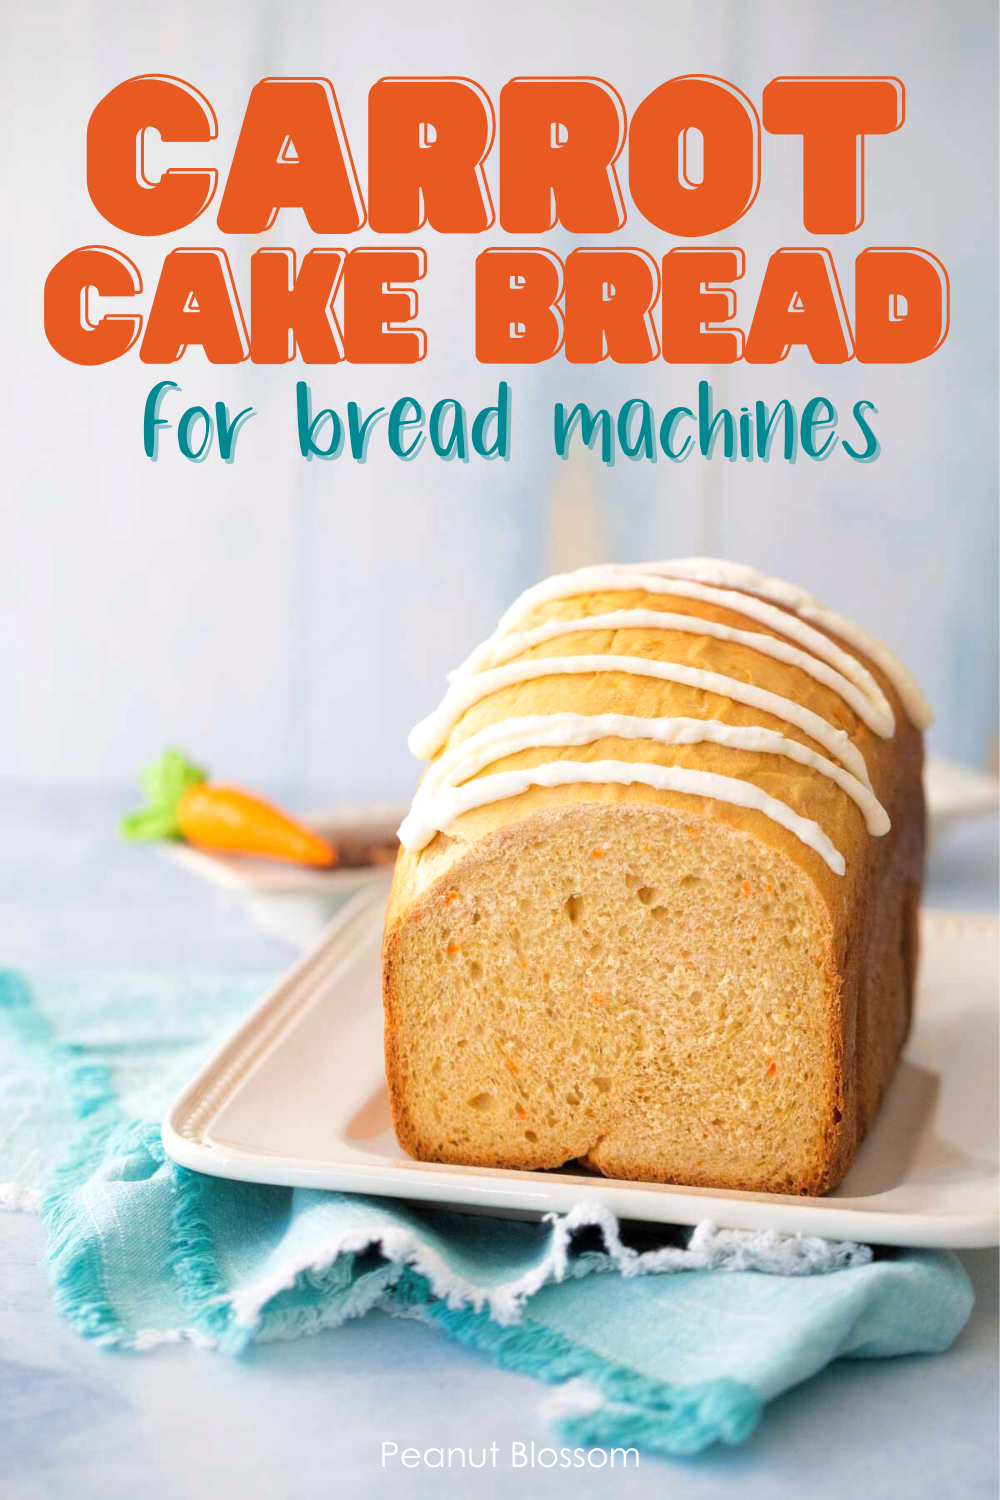 The baked carrot cake bread has been sliced so you can see the inside and is covered with a cream cheese drizzle.